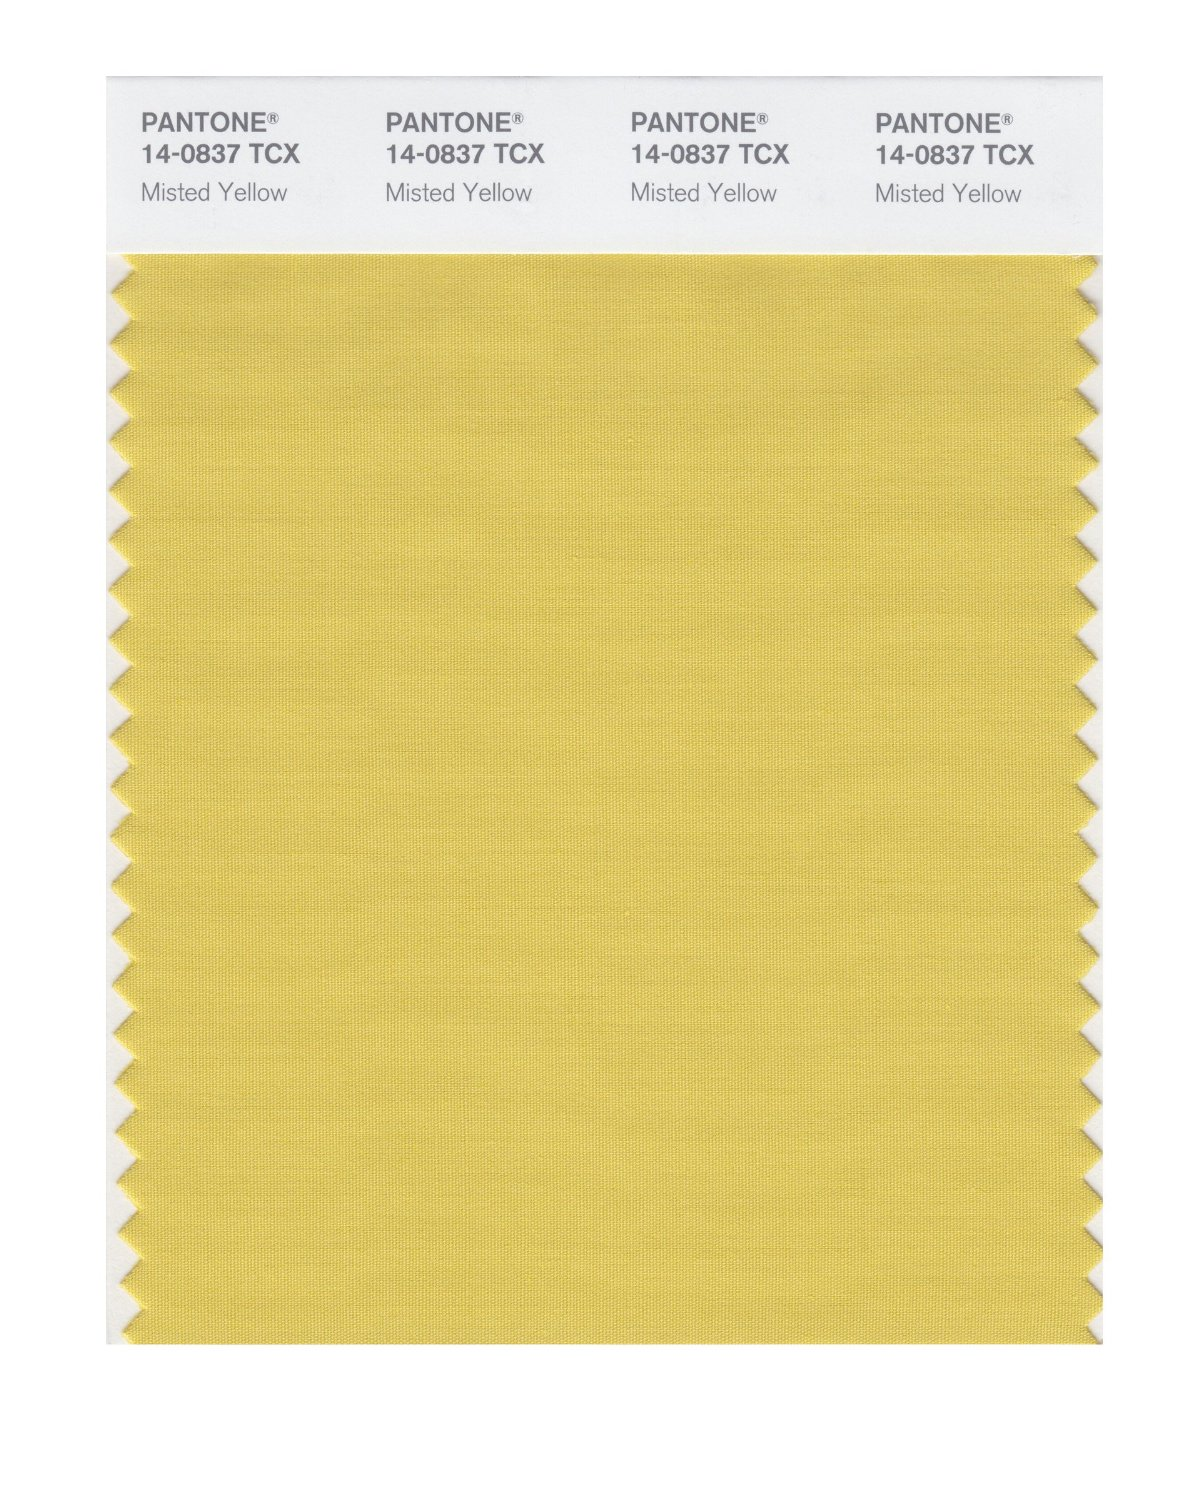 Pantone Smart Swatch 14-0837 Misted Yellow